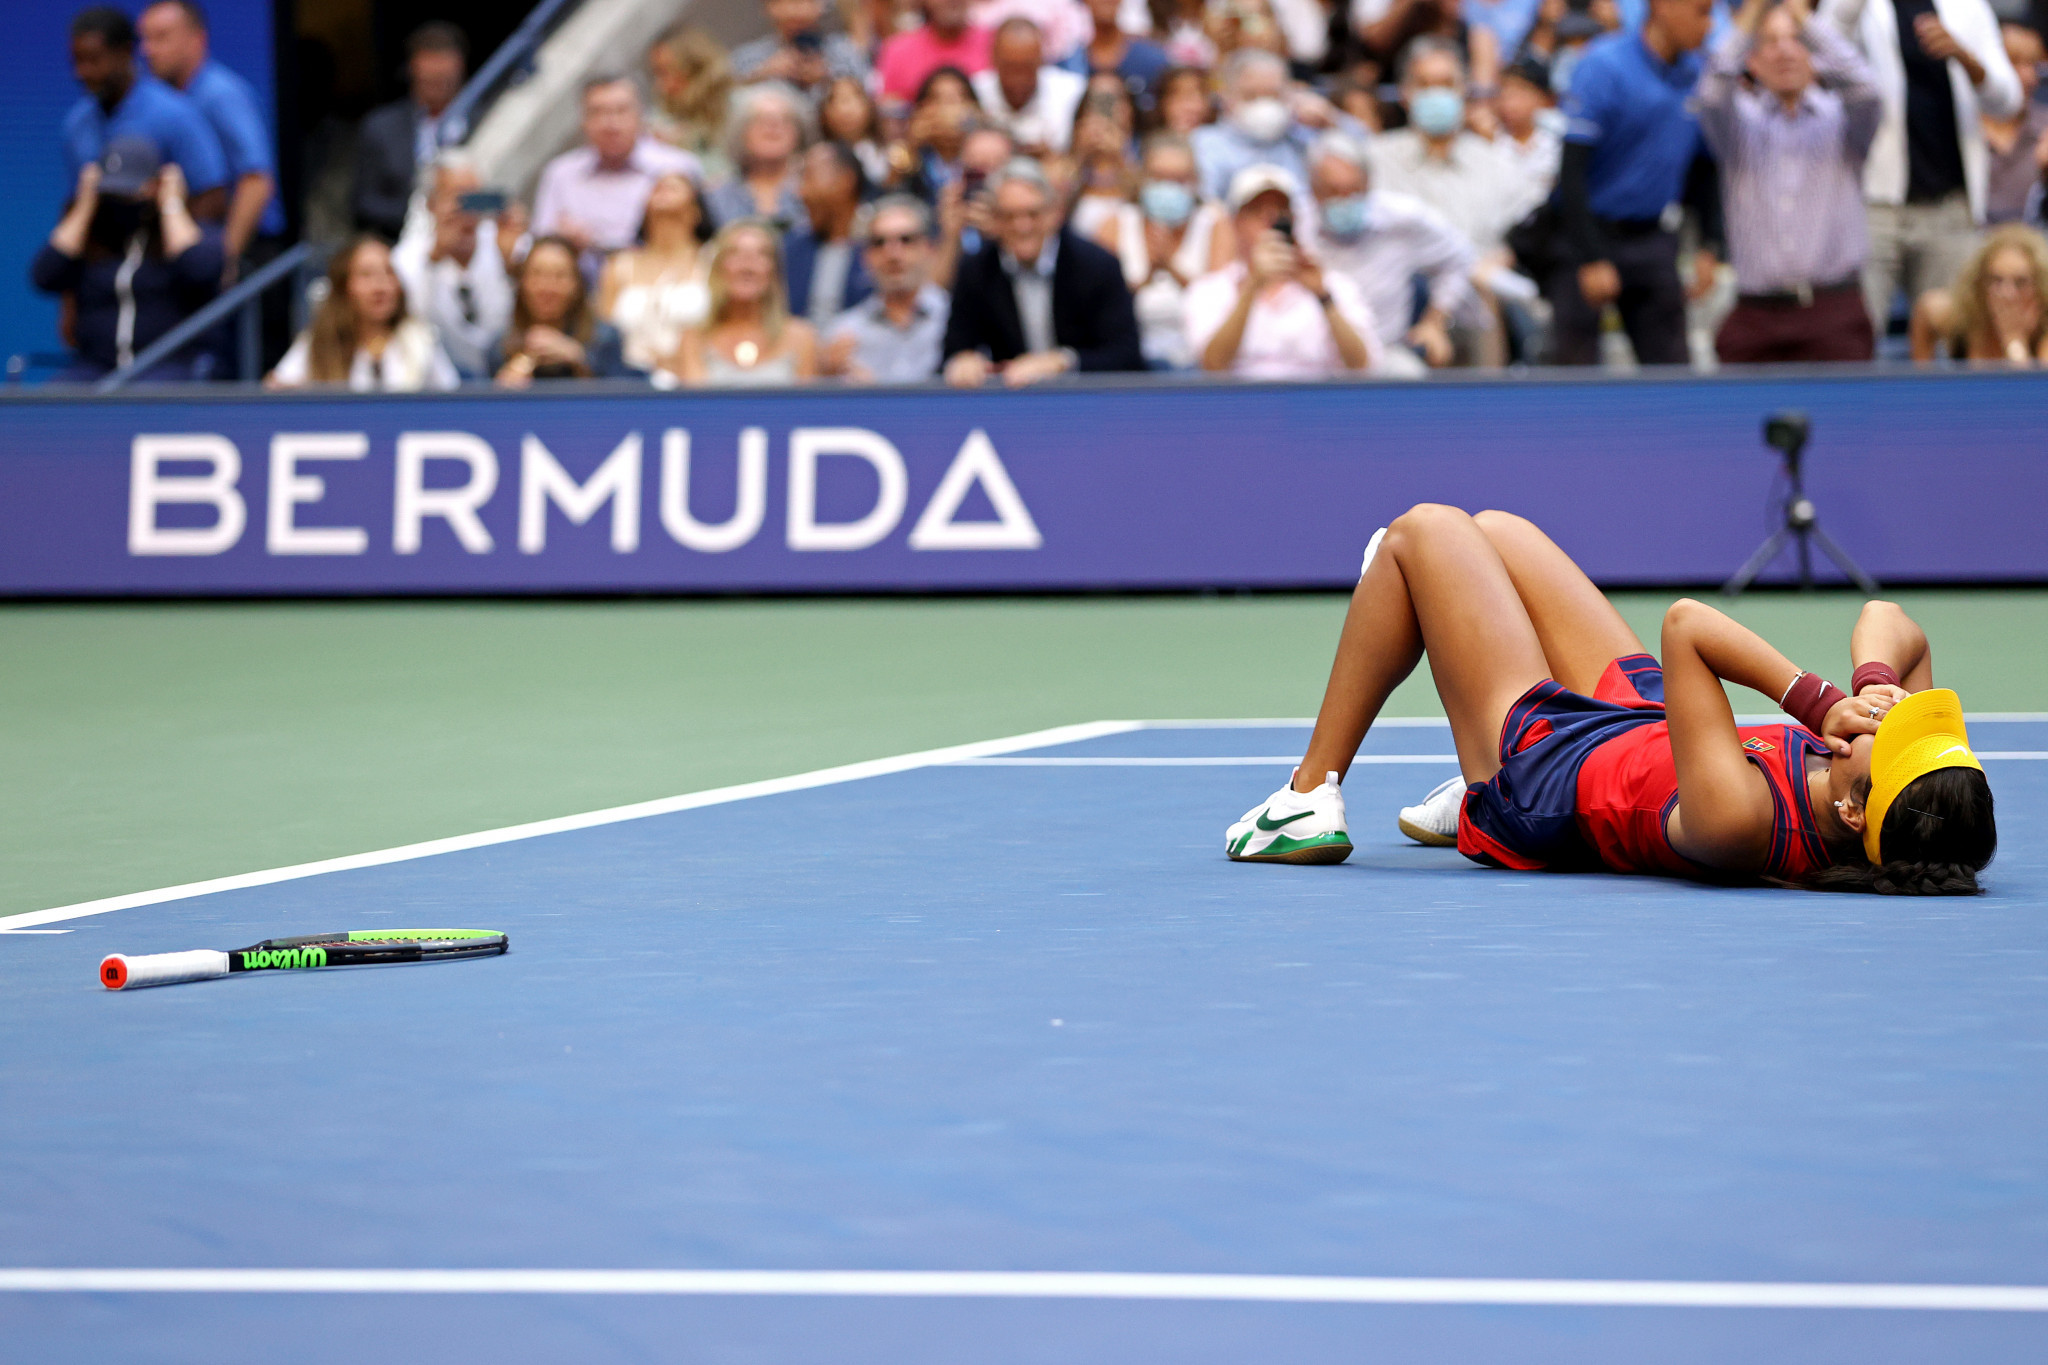 Raducanu is the first British woman to win the US Open since Virginia Wade in 1968 ©Getty Images